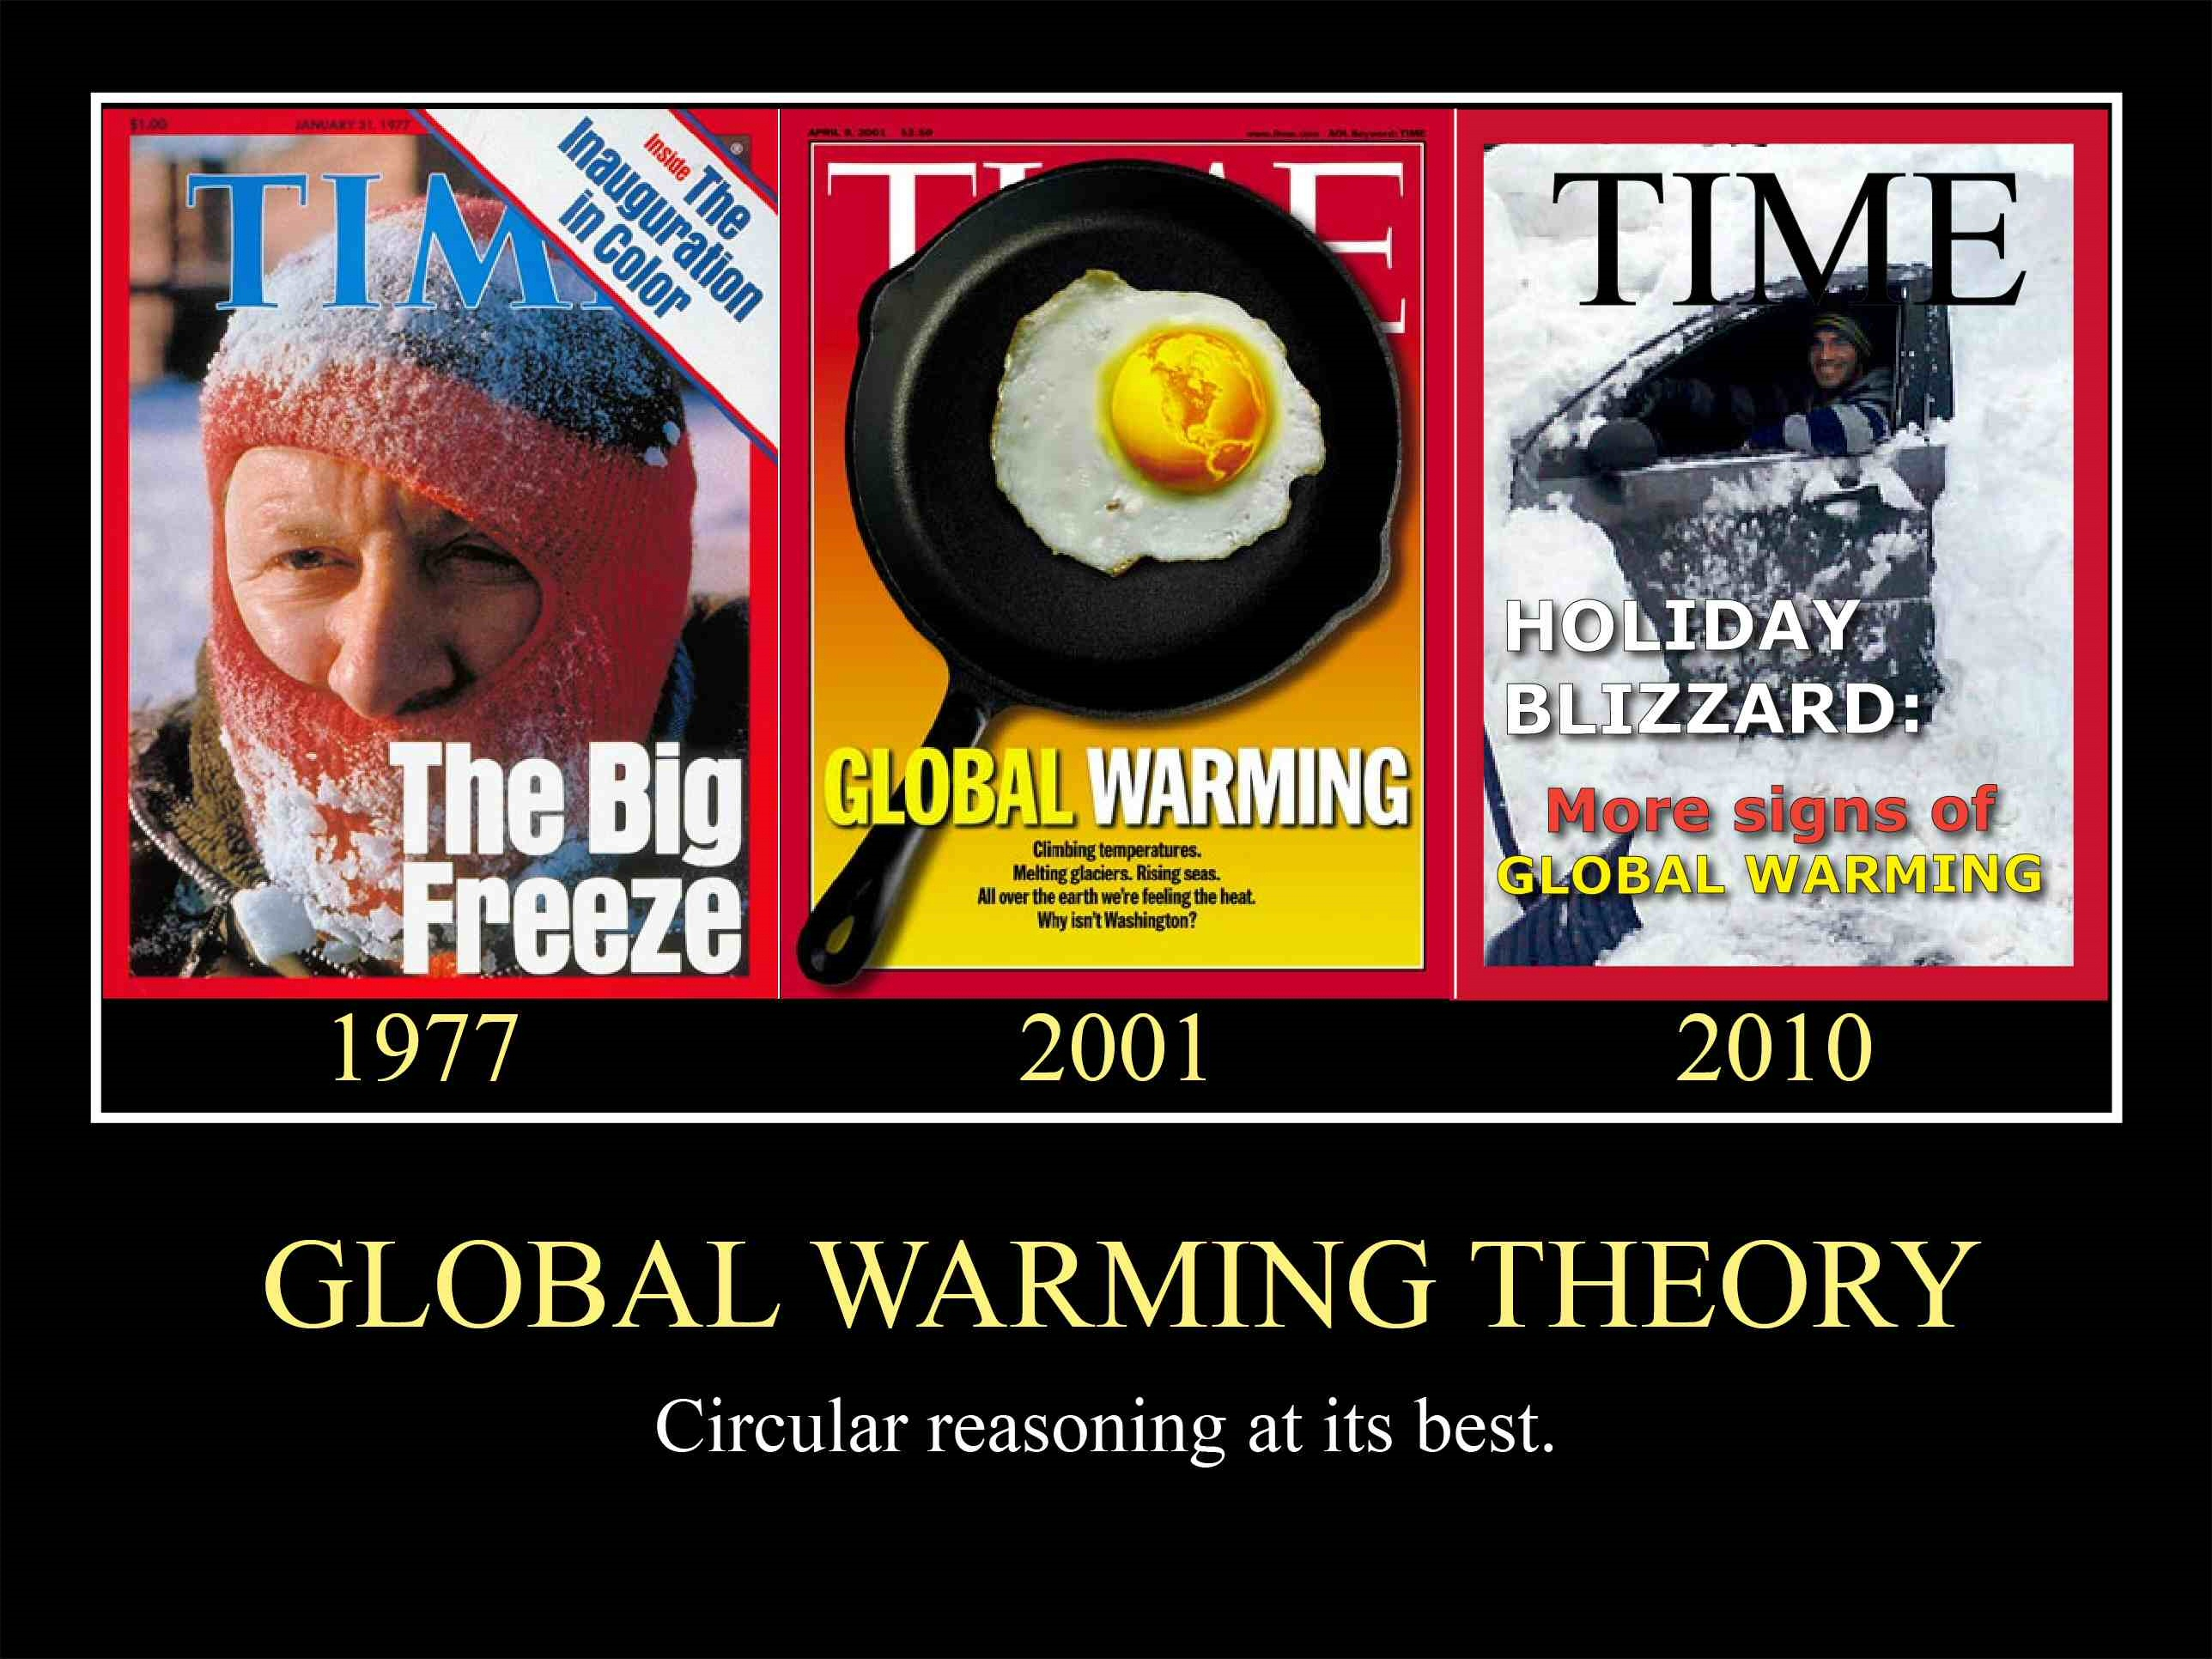 Cons: What exactly is your position on Global Warming?